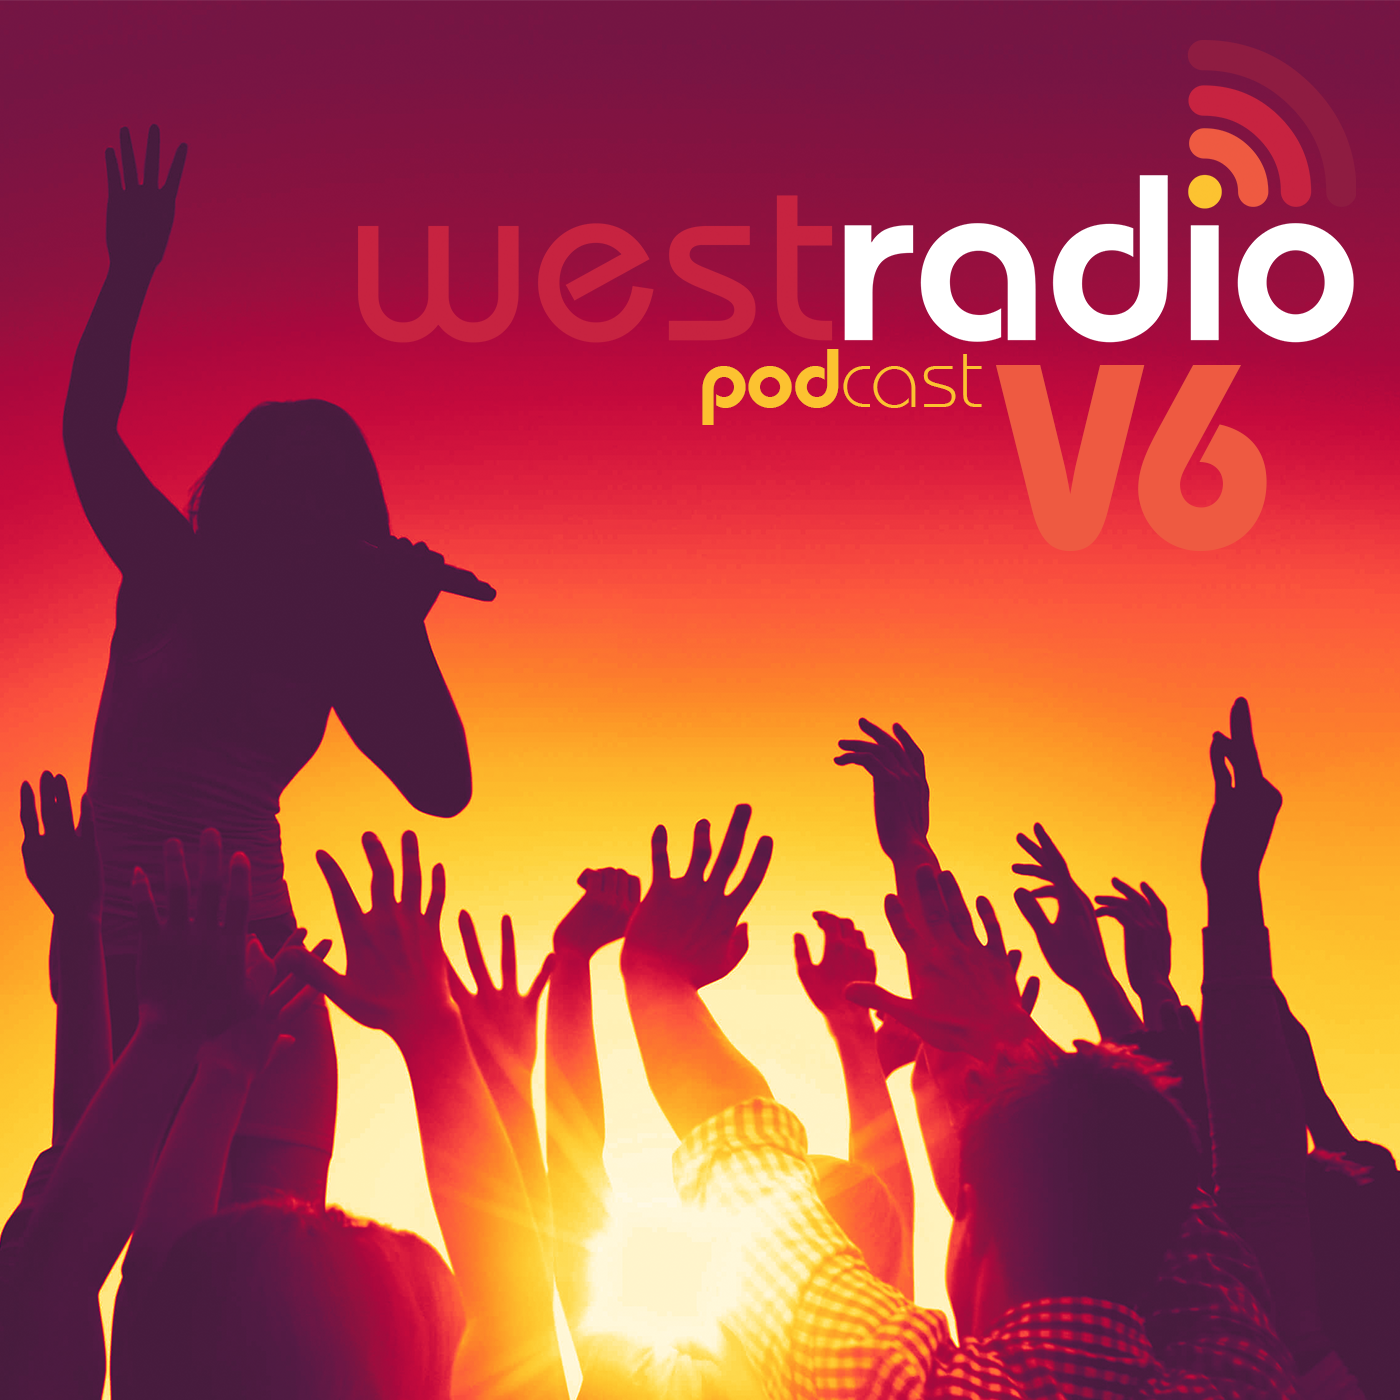 WestRadio - Podcast - Vince 06